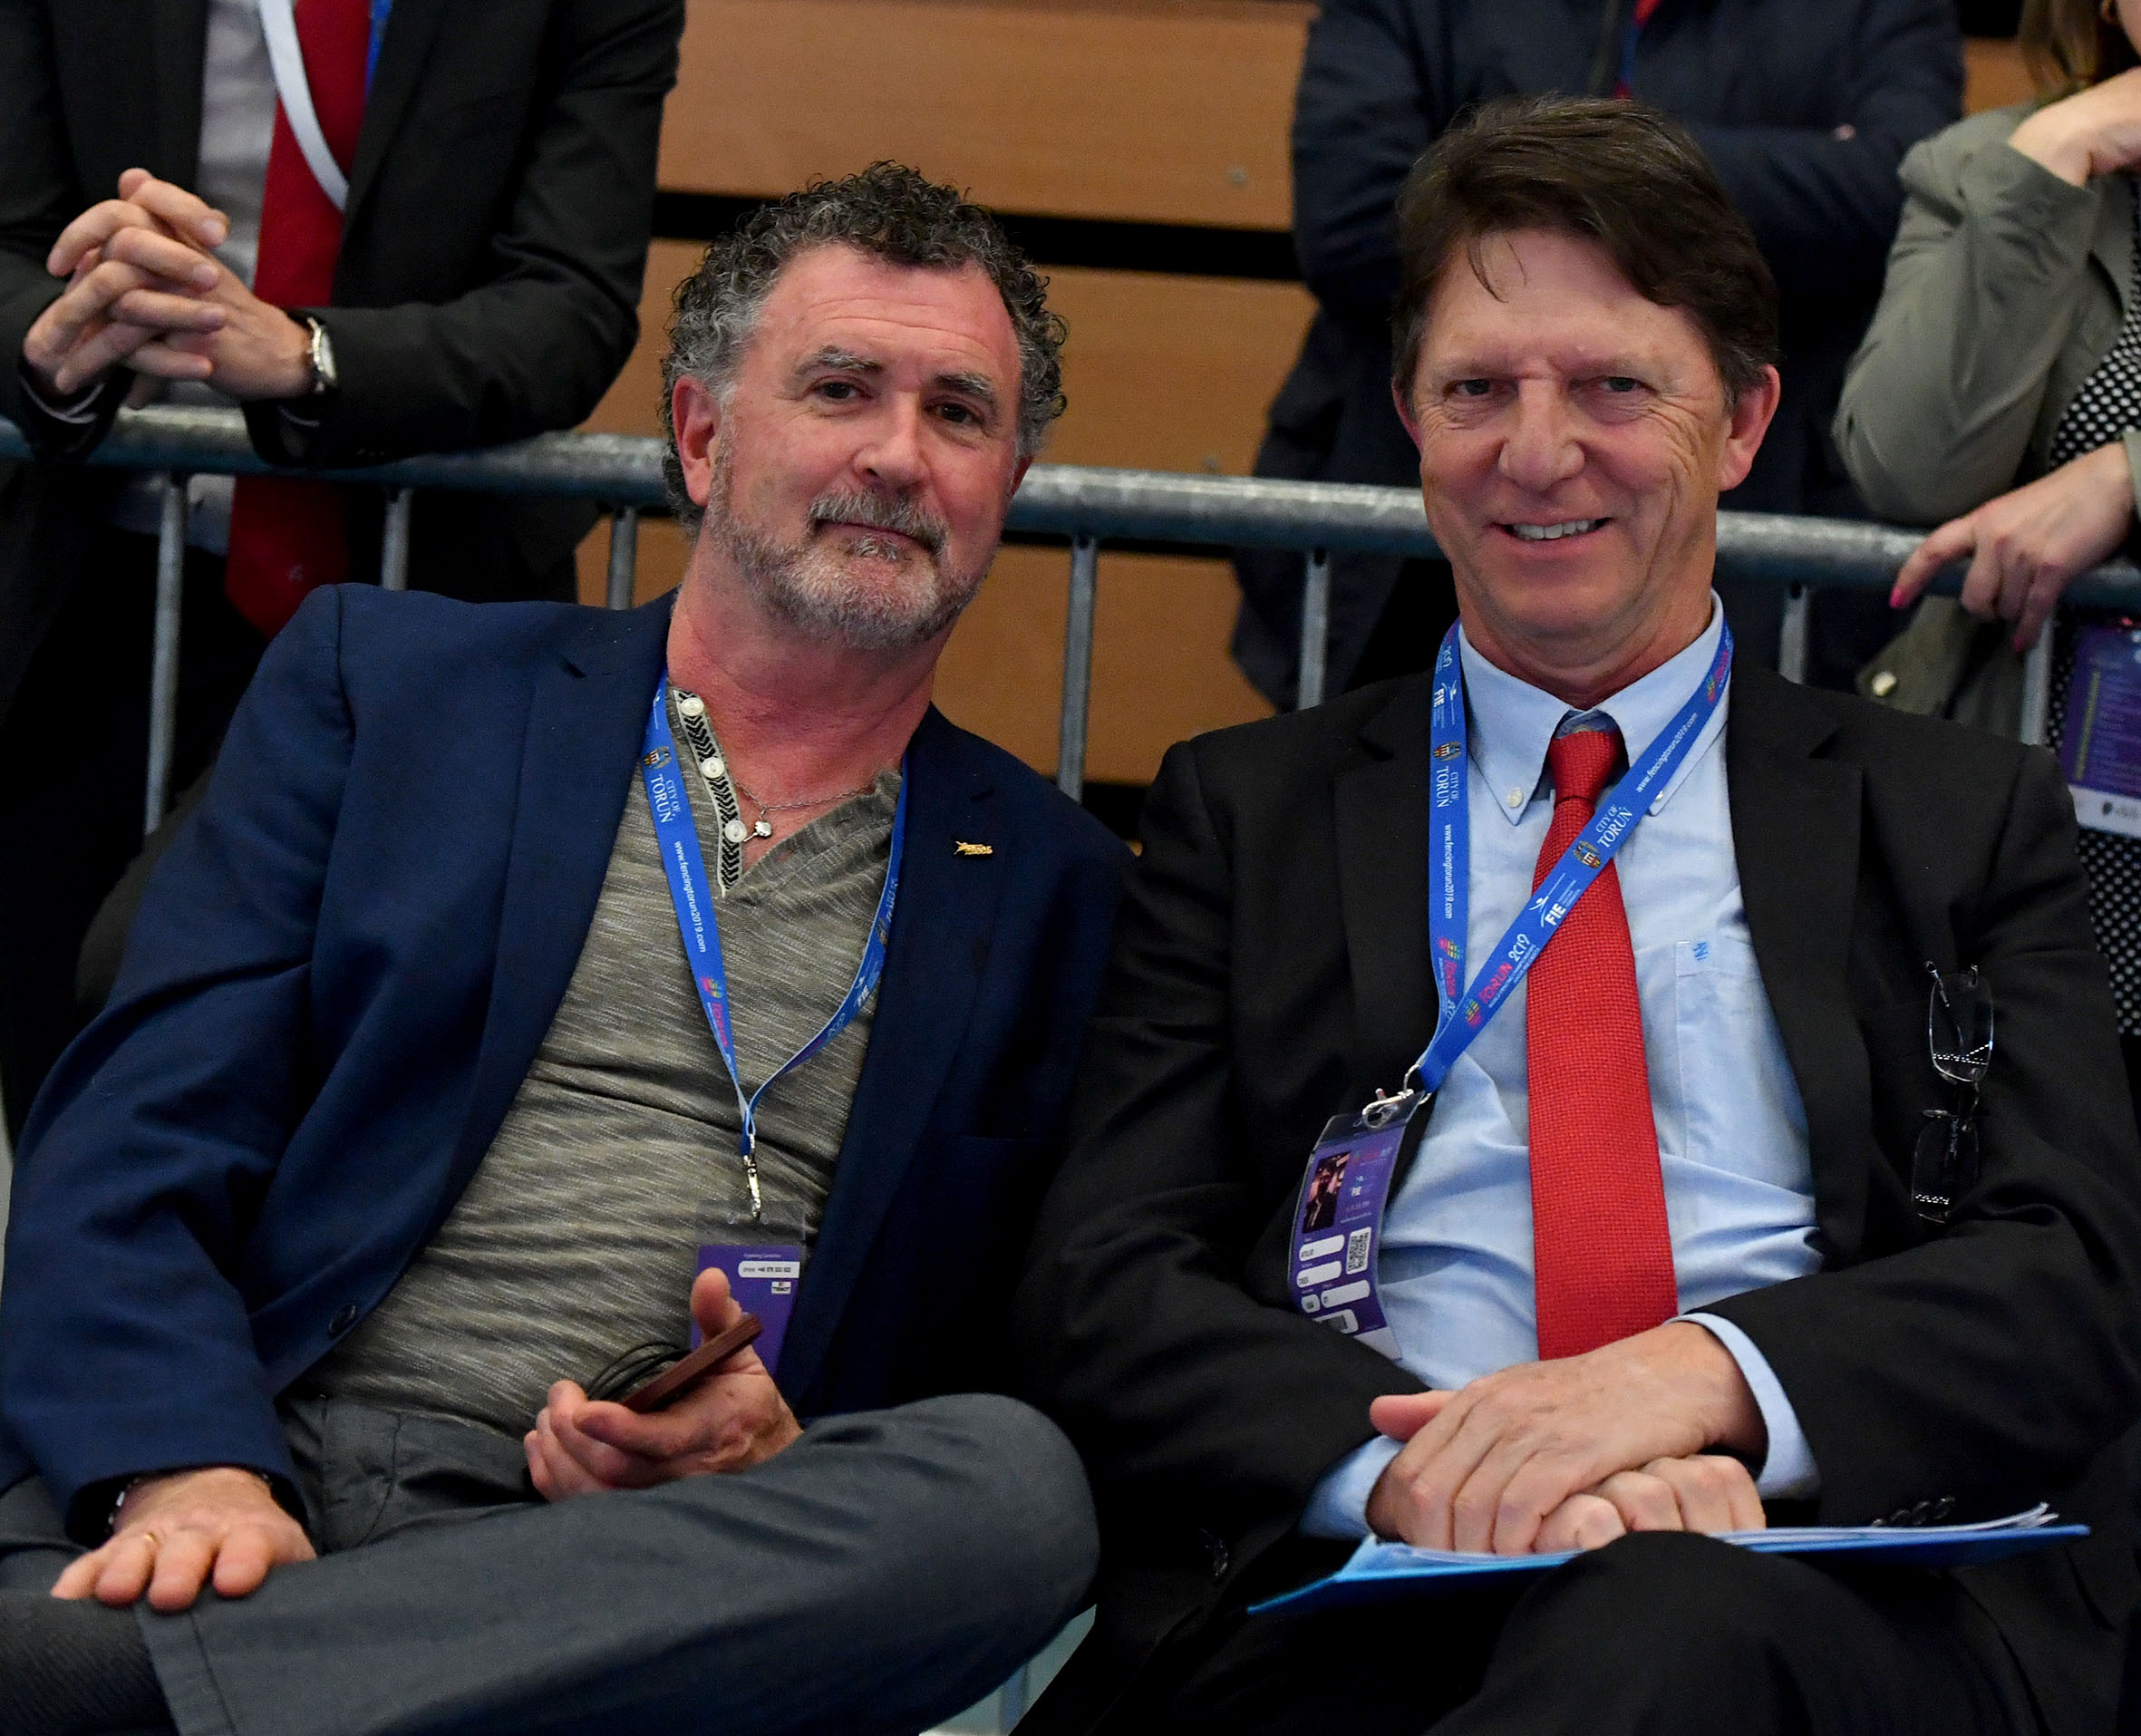 CEO Serge Timacheff and Head Coach Atilio Tass at the 2019 Junior and Cadet World Fencing Championships, in Torun, Poland.